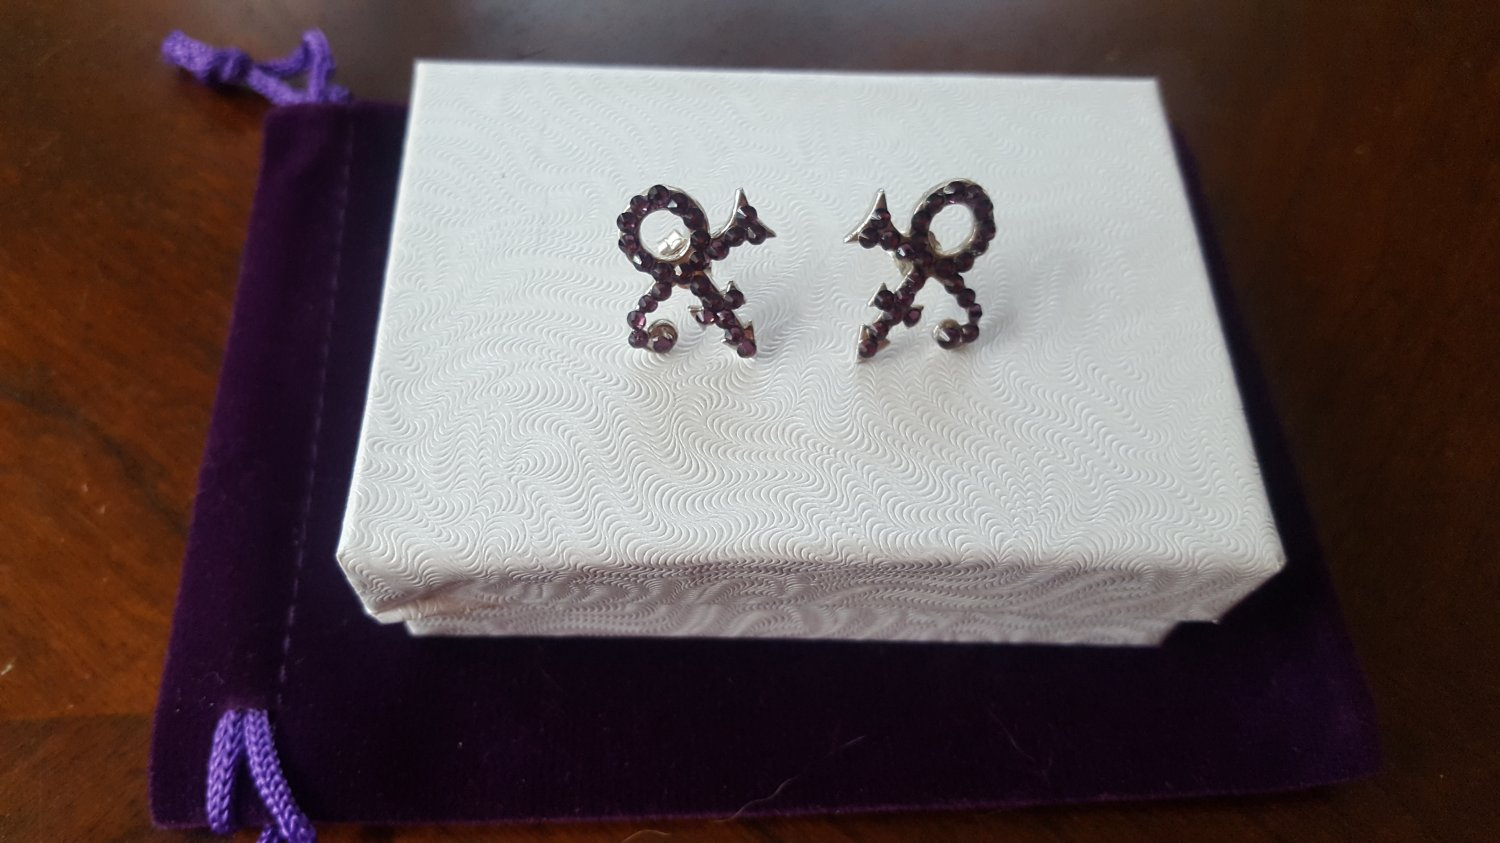 Prince Symbol Earrings with Purple Swarovski Crystals - 100% Sterling silver